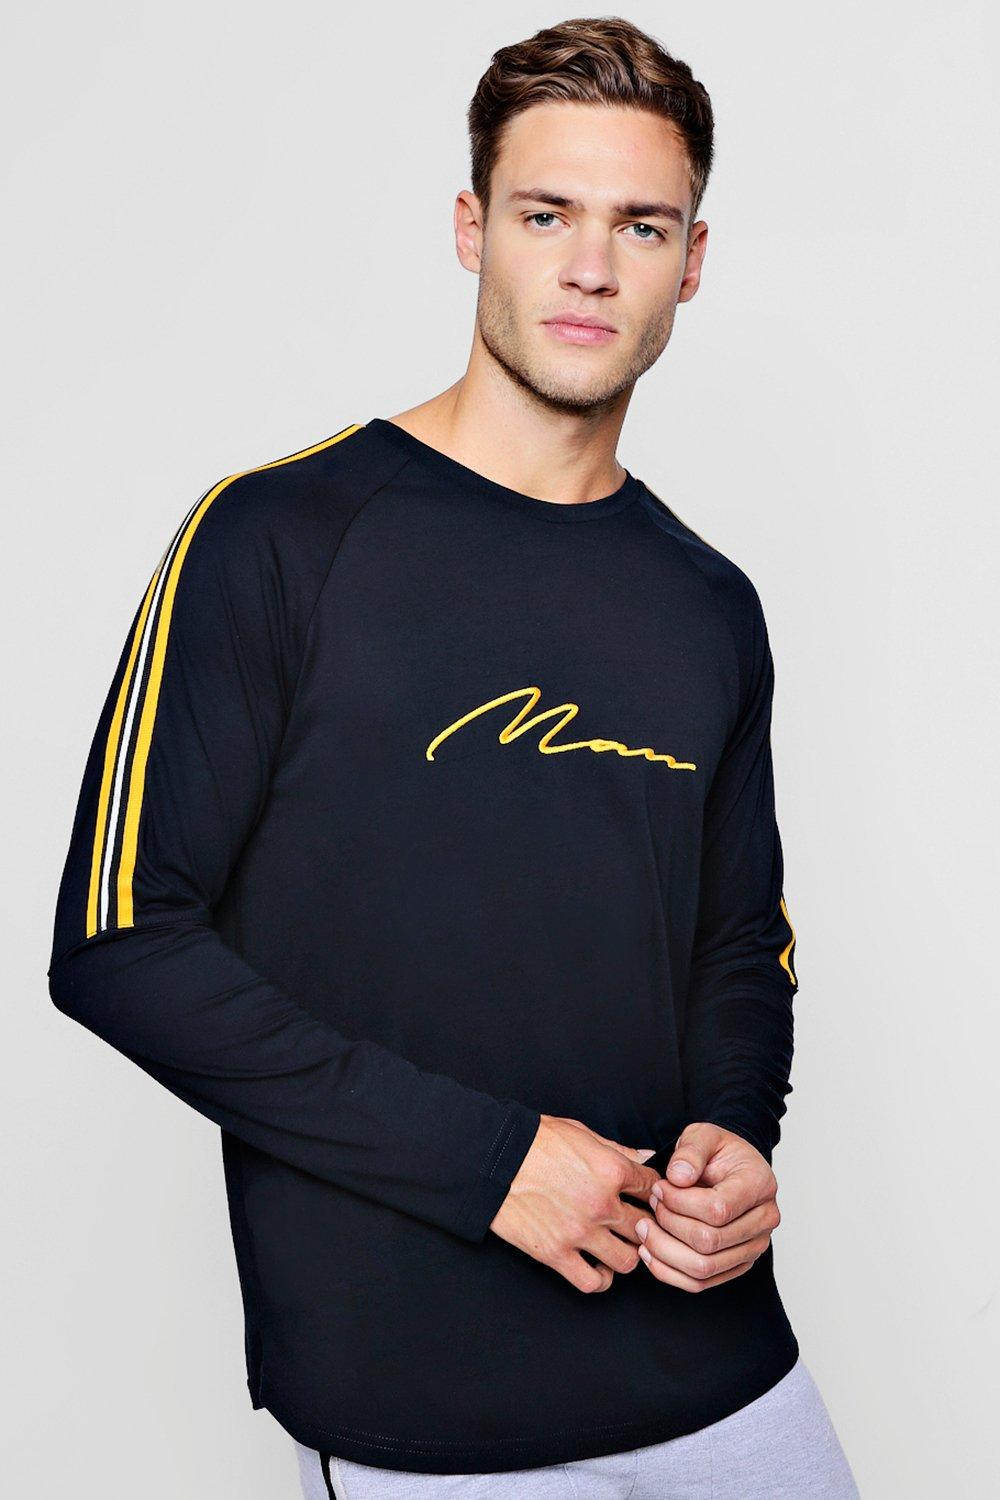 Image result for long sleeve t shirts;